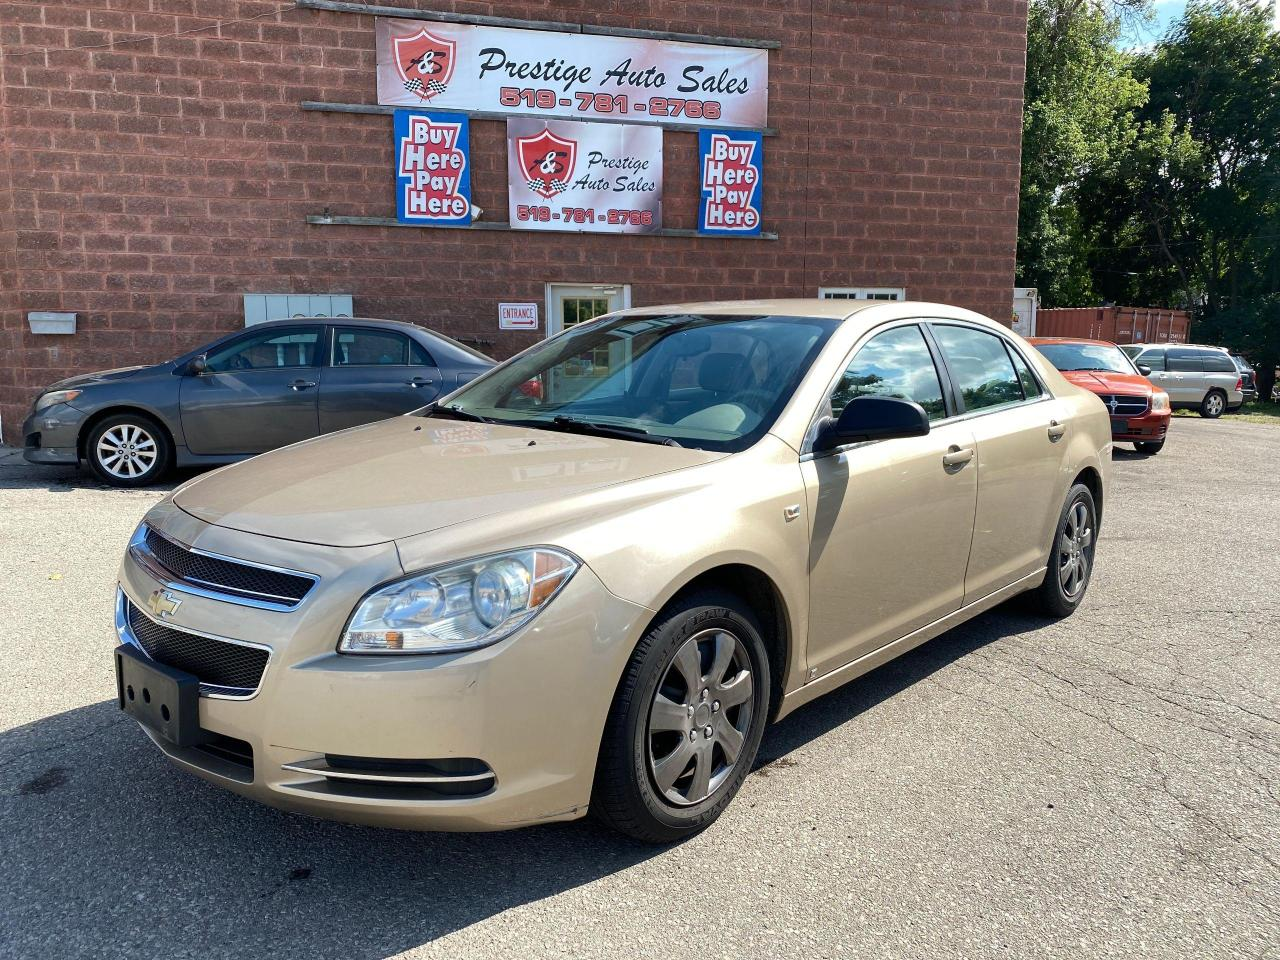 used 2008 chevrolet malibu ls 2.4l low kms no accident safety warranty includ for sale in cambridge, ontario carpages.ca